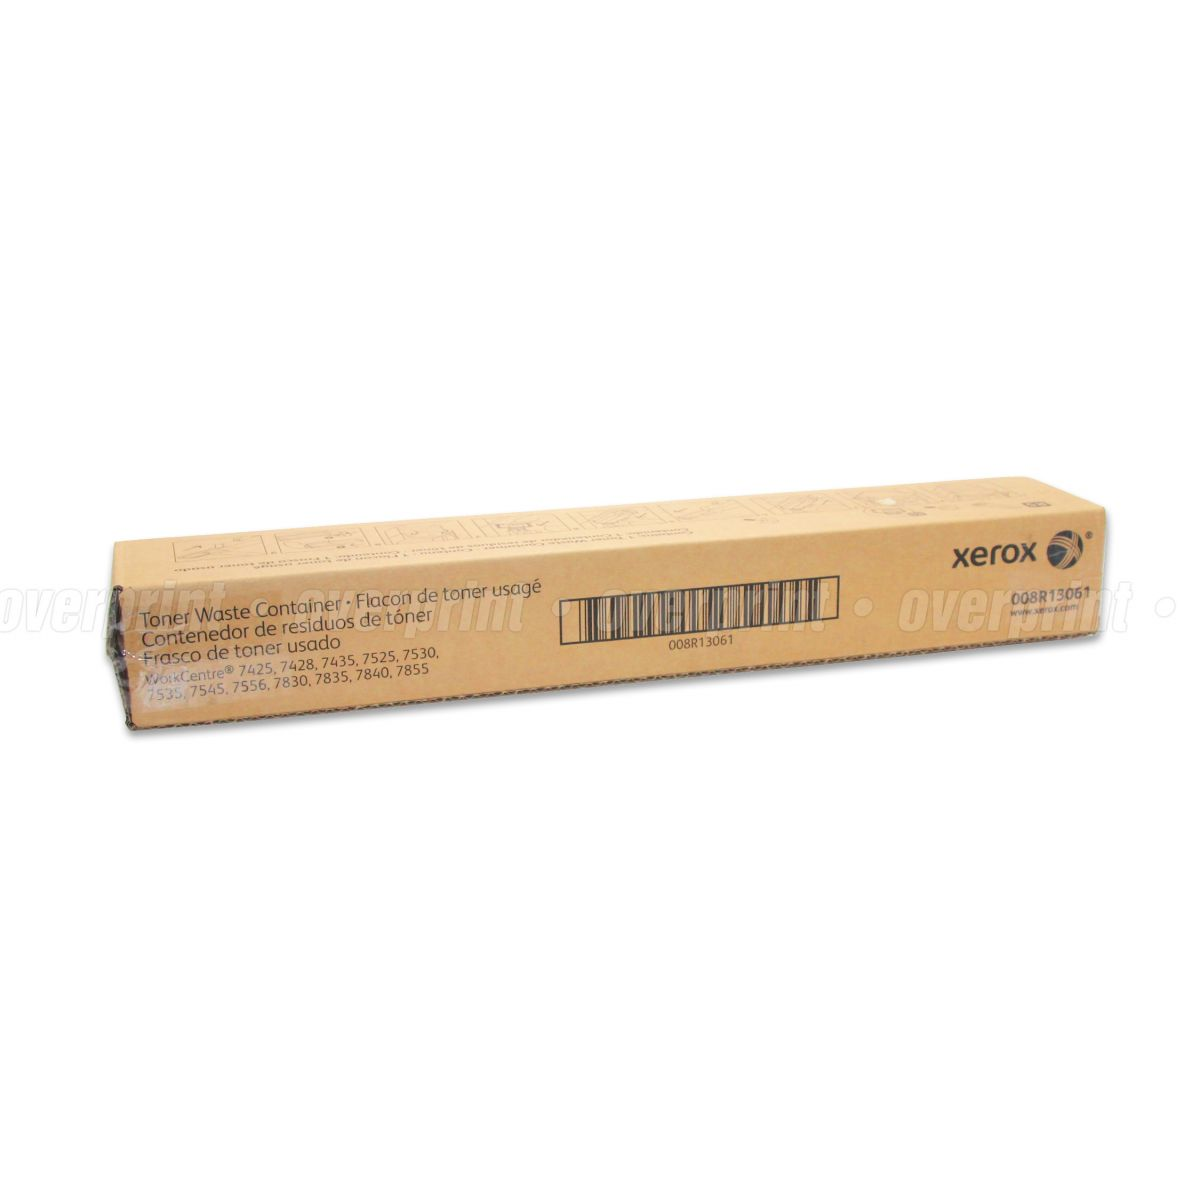 Recipiente de Toner (Waste Toner) Xerox Original (Novo) - WorkCentre 7525/7530/7535/7545/7556 - Overprint